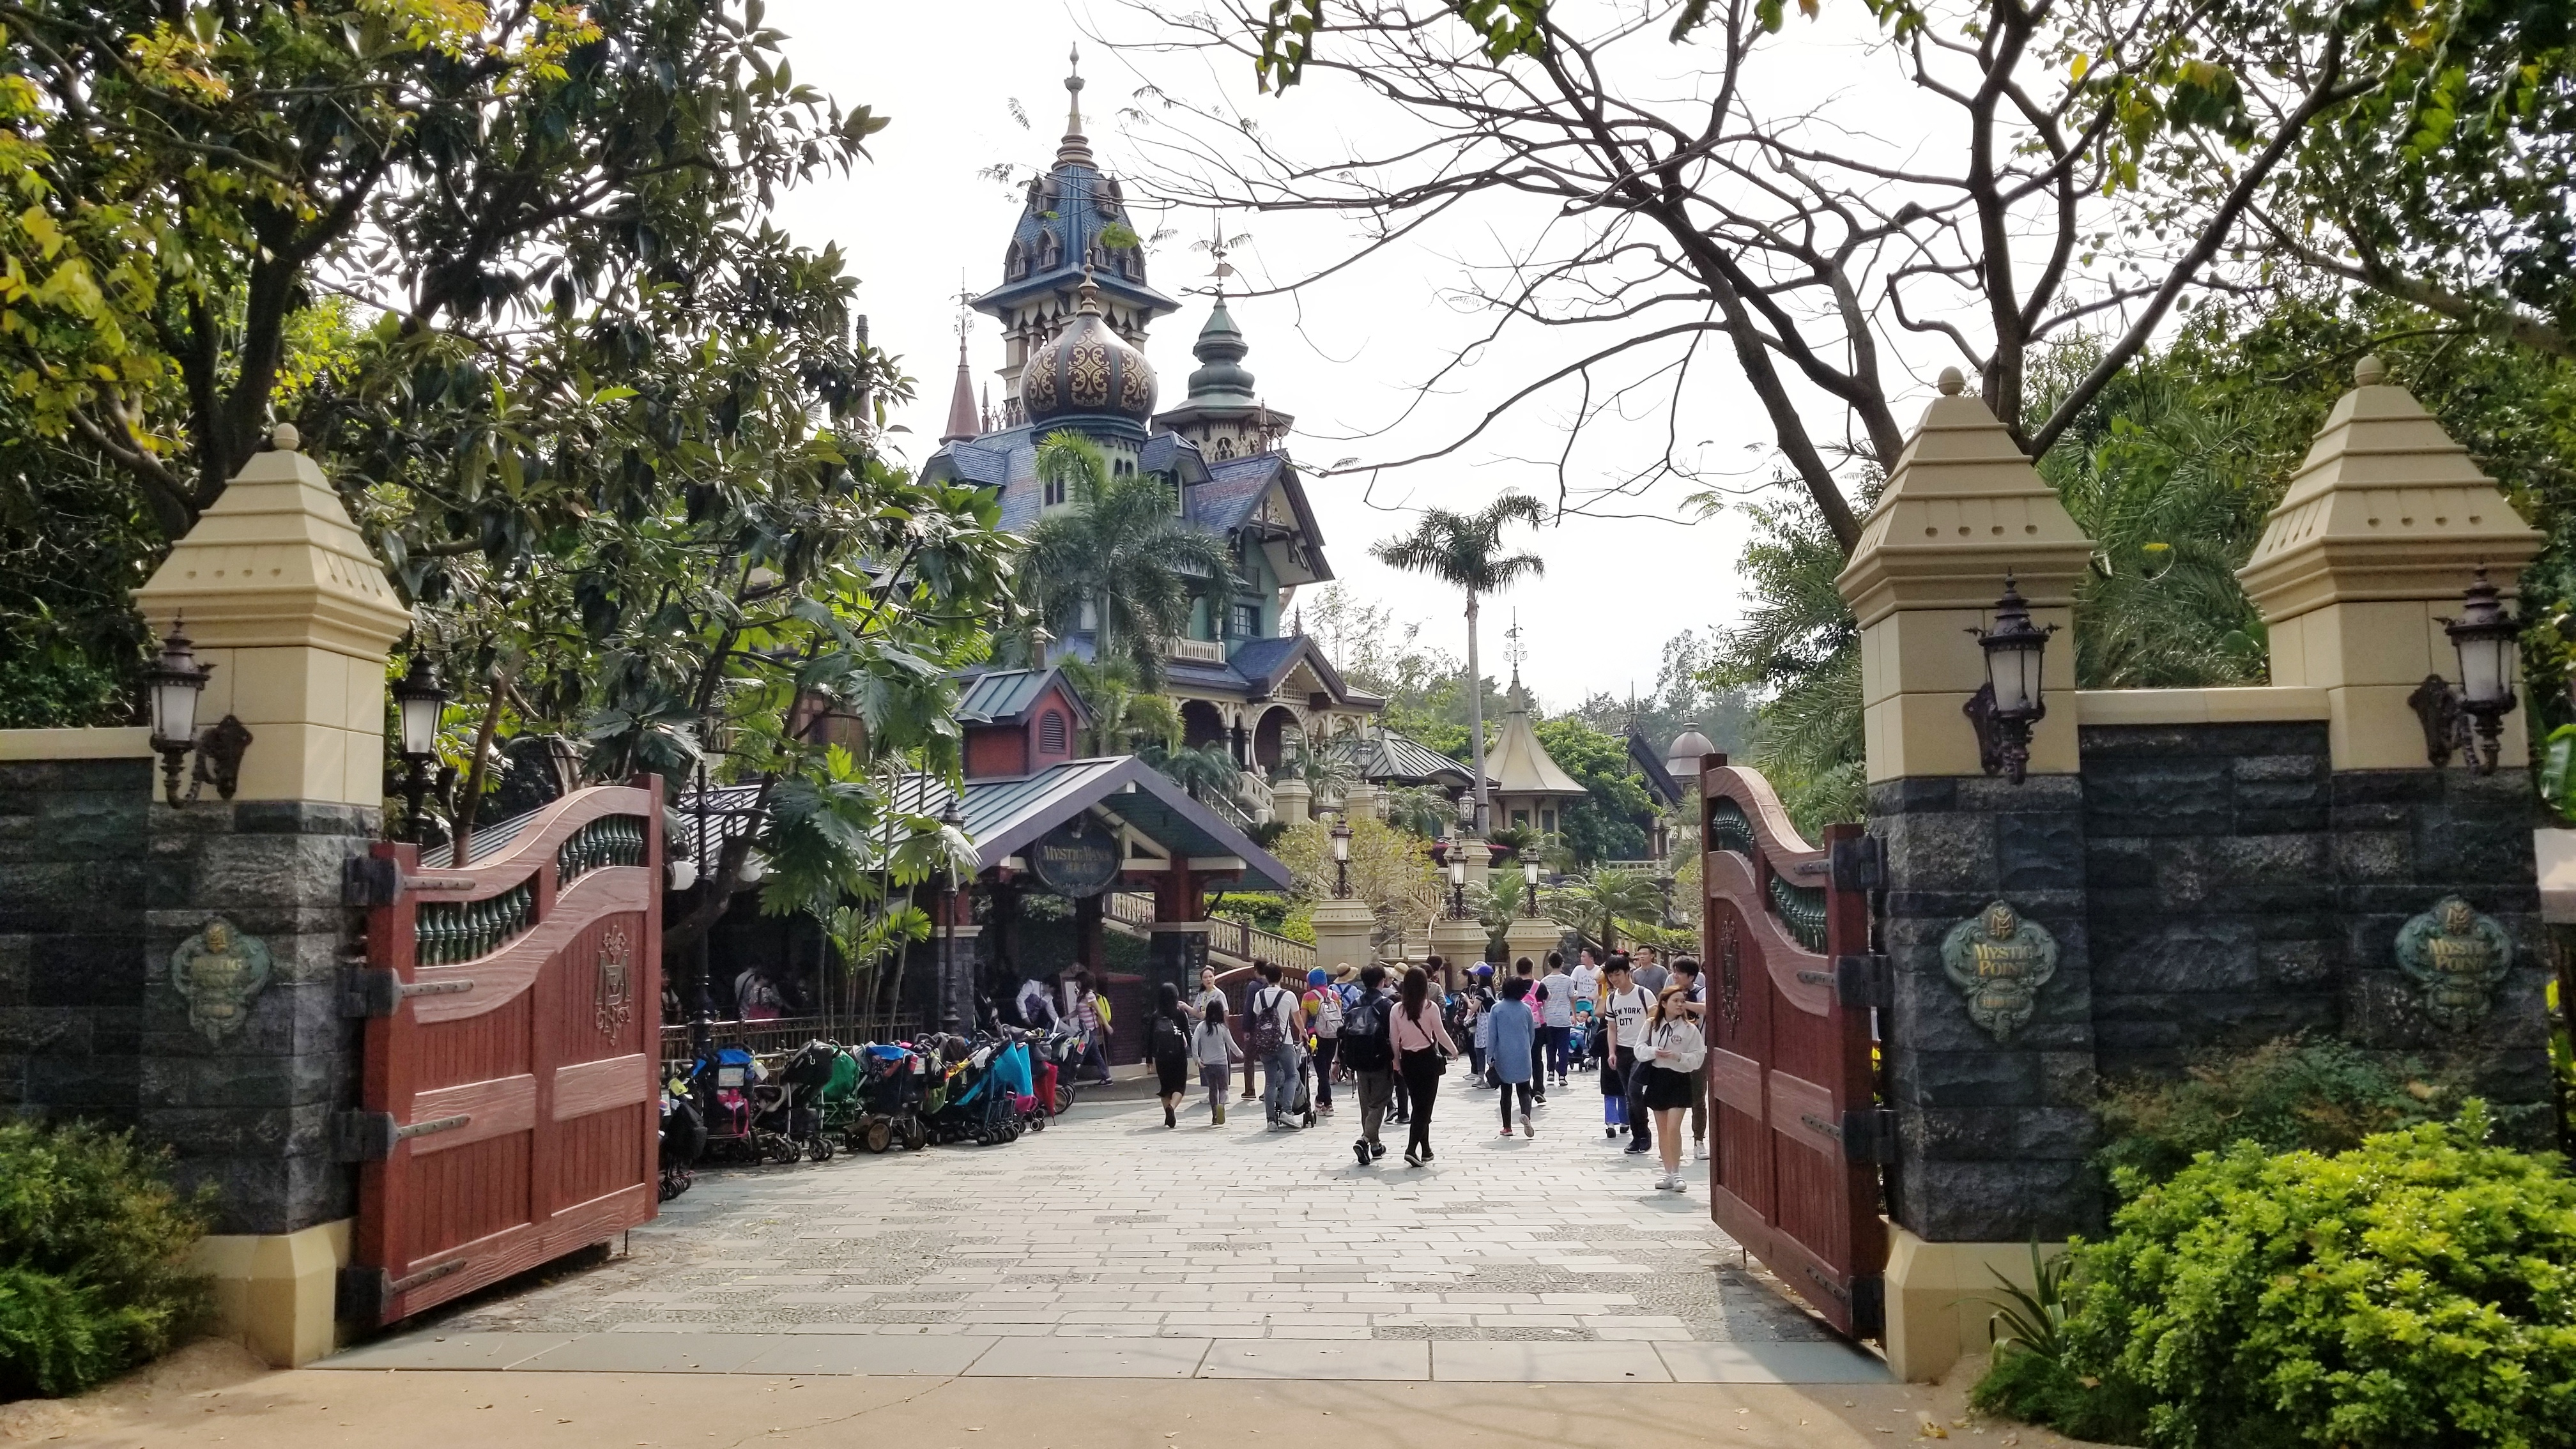 disney environmental impacts hong kong Disney is recruiting new vice president for disney springs - apply now forums  hong kong and shanghai  including their impacts on key business drivers.